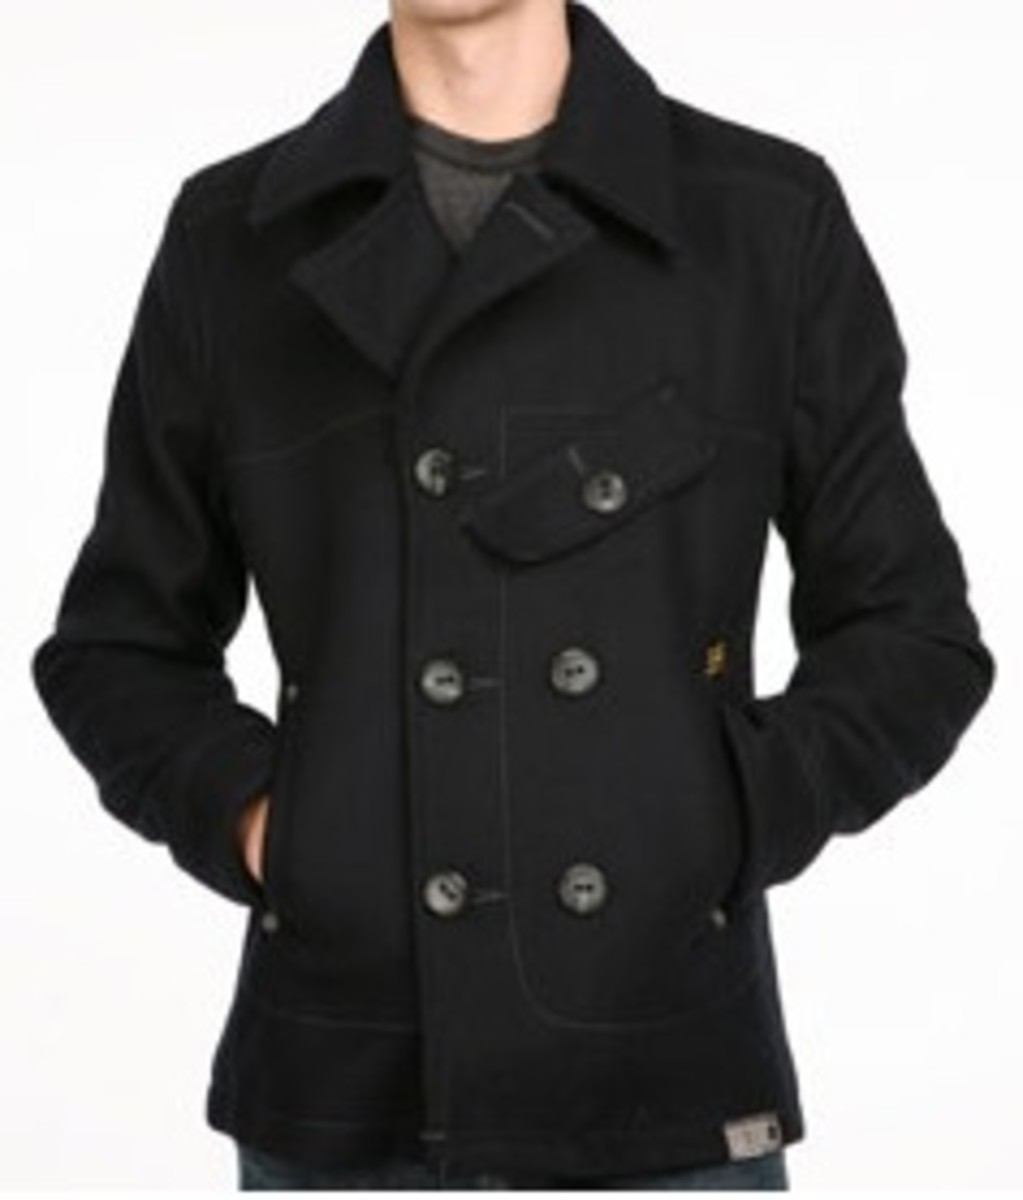 Free shipping and returns on women's peacoats at pc-ios.tk Shop top brands like Calvin Klein, Burberry Brit and more, plus check out customer reviews.